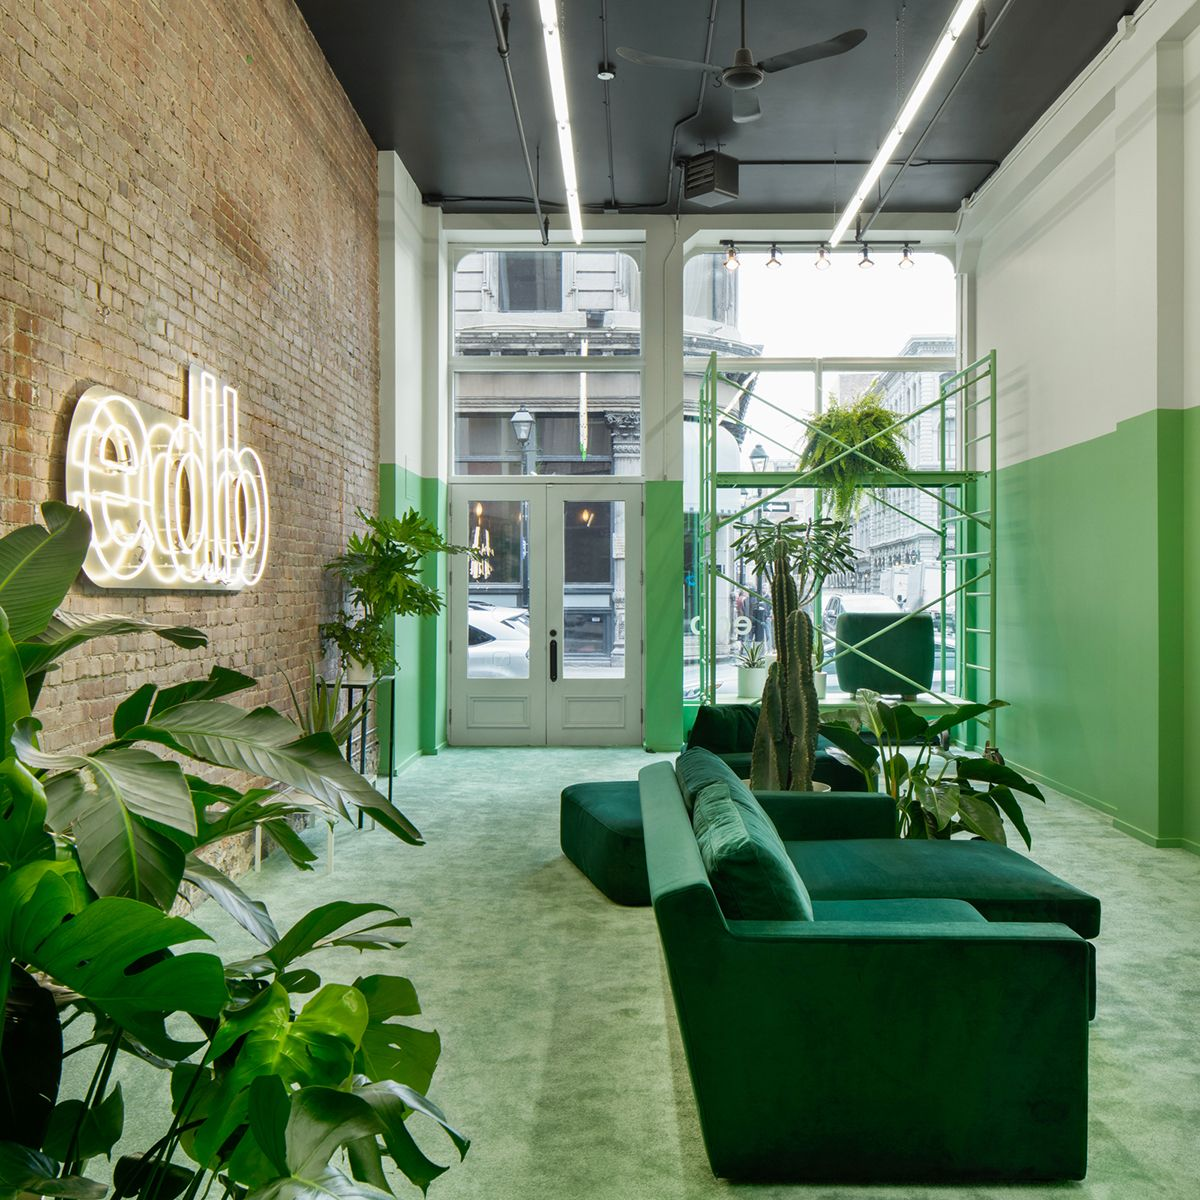 Interior Design Office Montreal: Élément De Base New Pop-up Shop Opens In Old Montreal